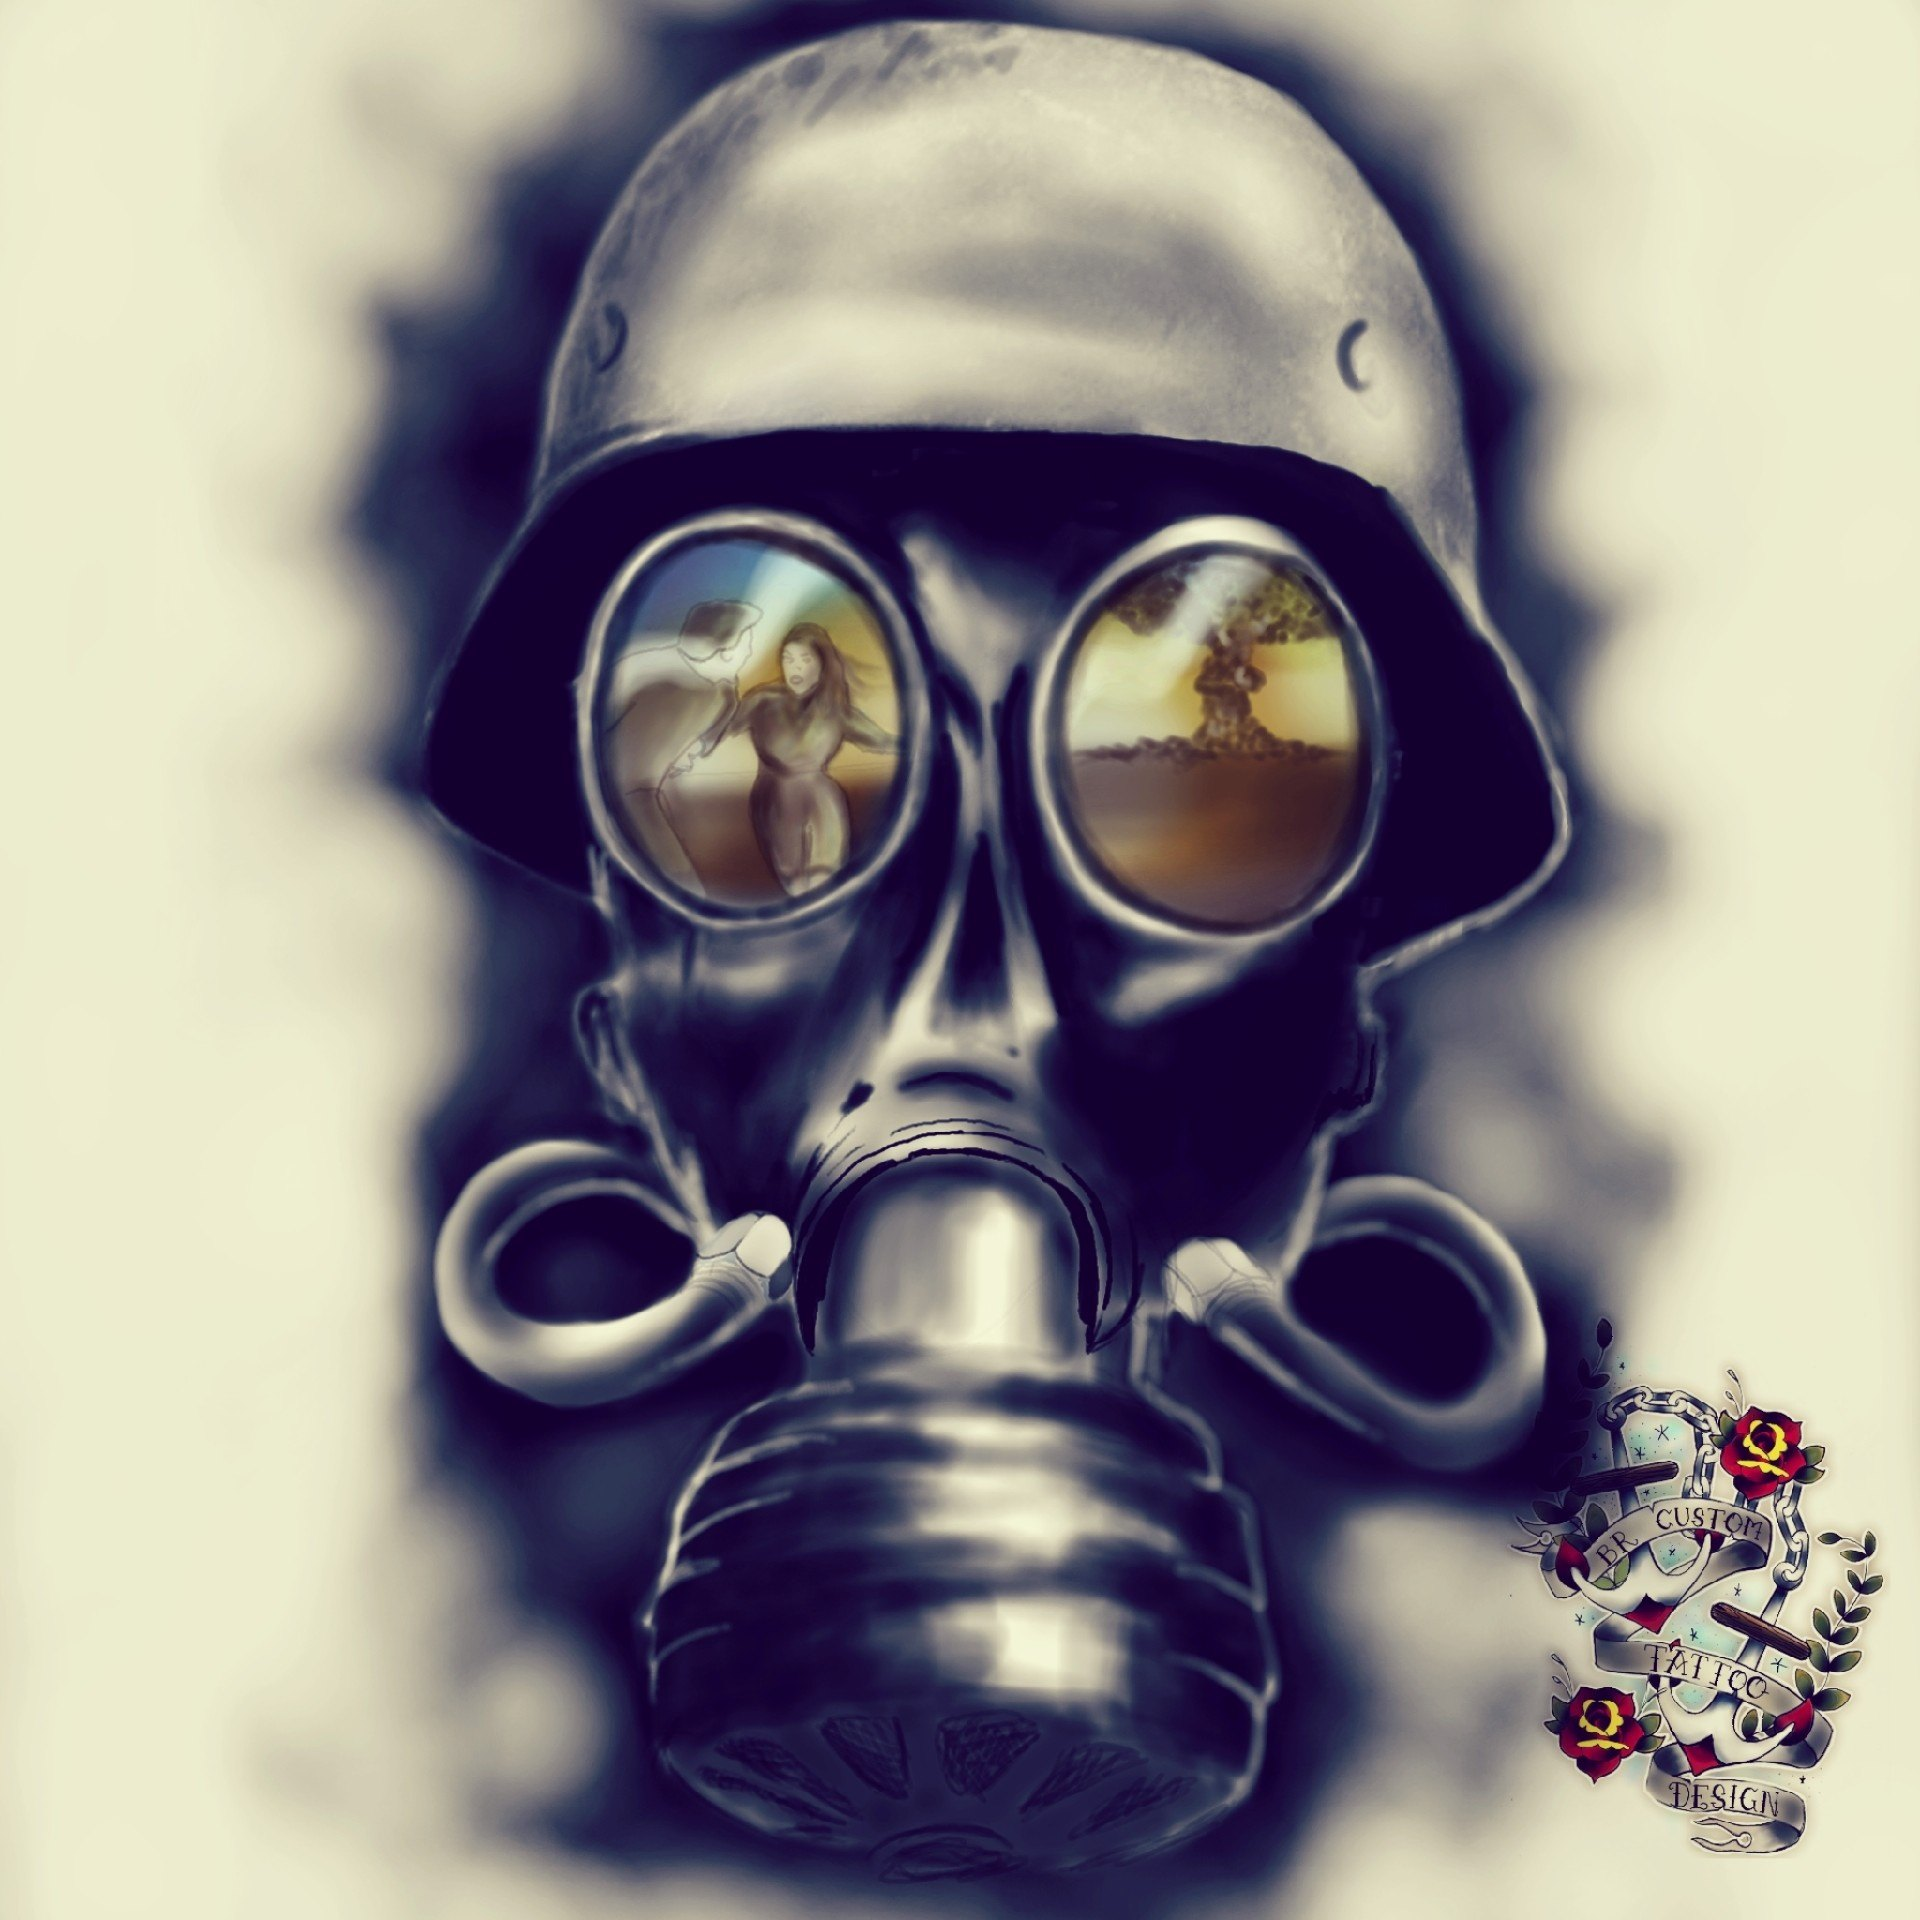 research on gas masks Psychology and the soldier krueger reported that two types of common military gear--m-40 gas masks the gas masks, found krueger and his research team in.